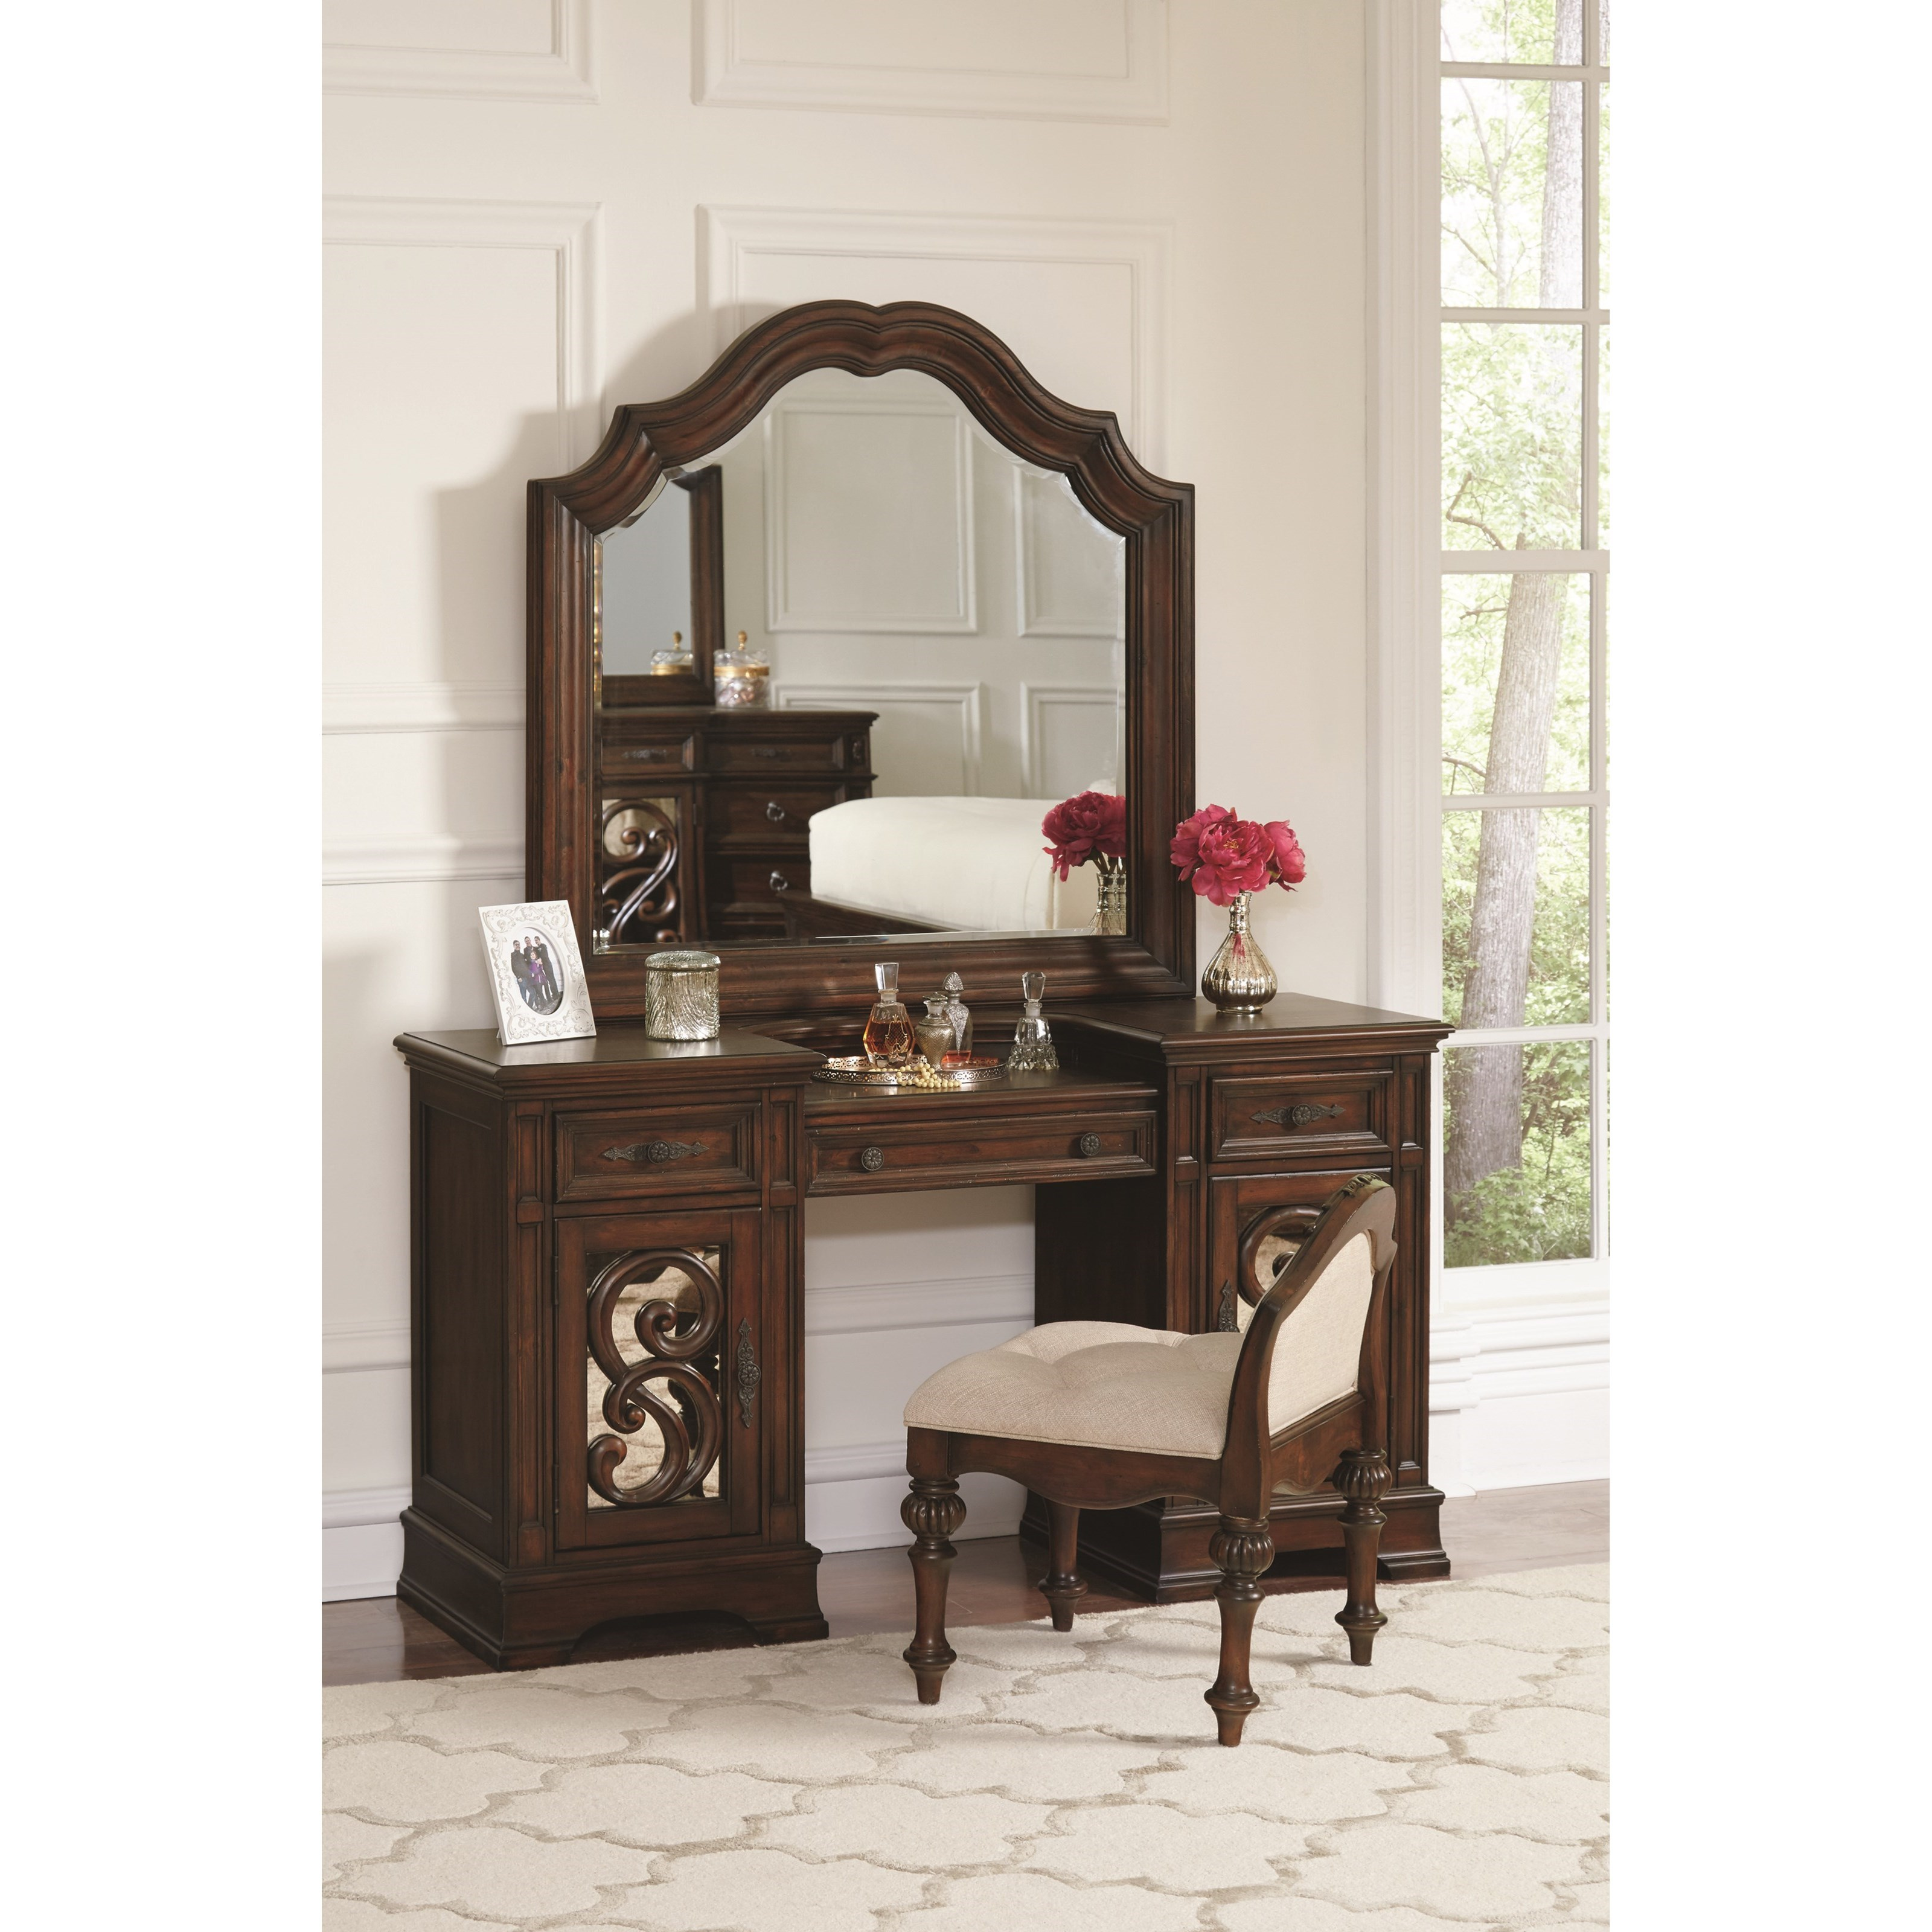 Canopy Style Bed Available For Order In These Wood Colours: Coaster Ilana 205289 Vanity Mirror With Wood Frame